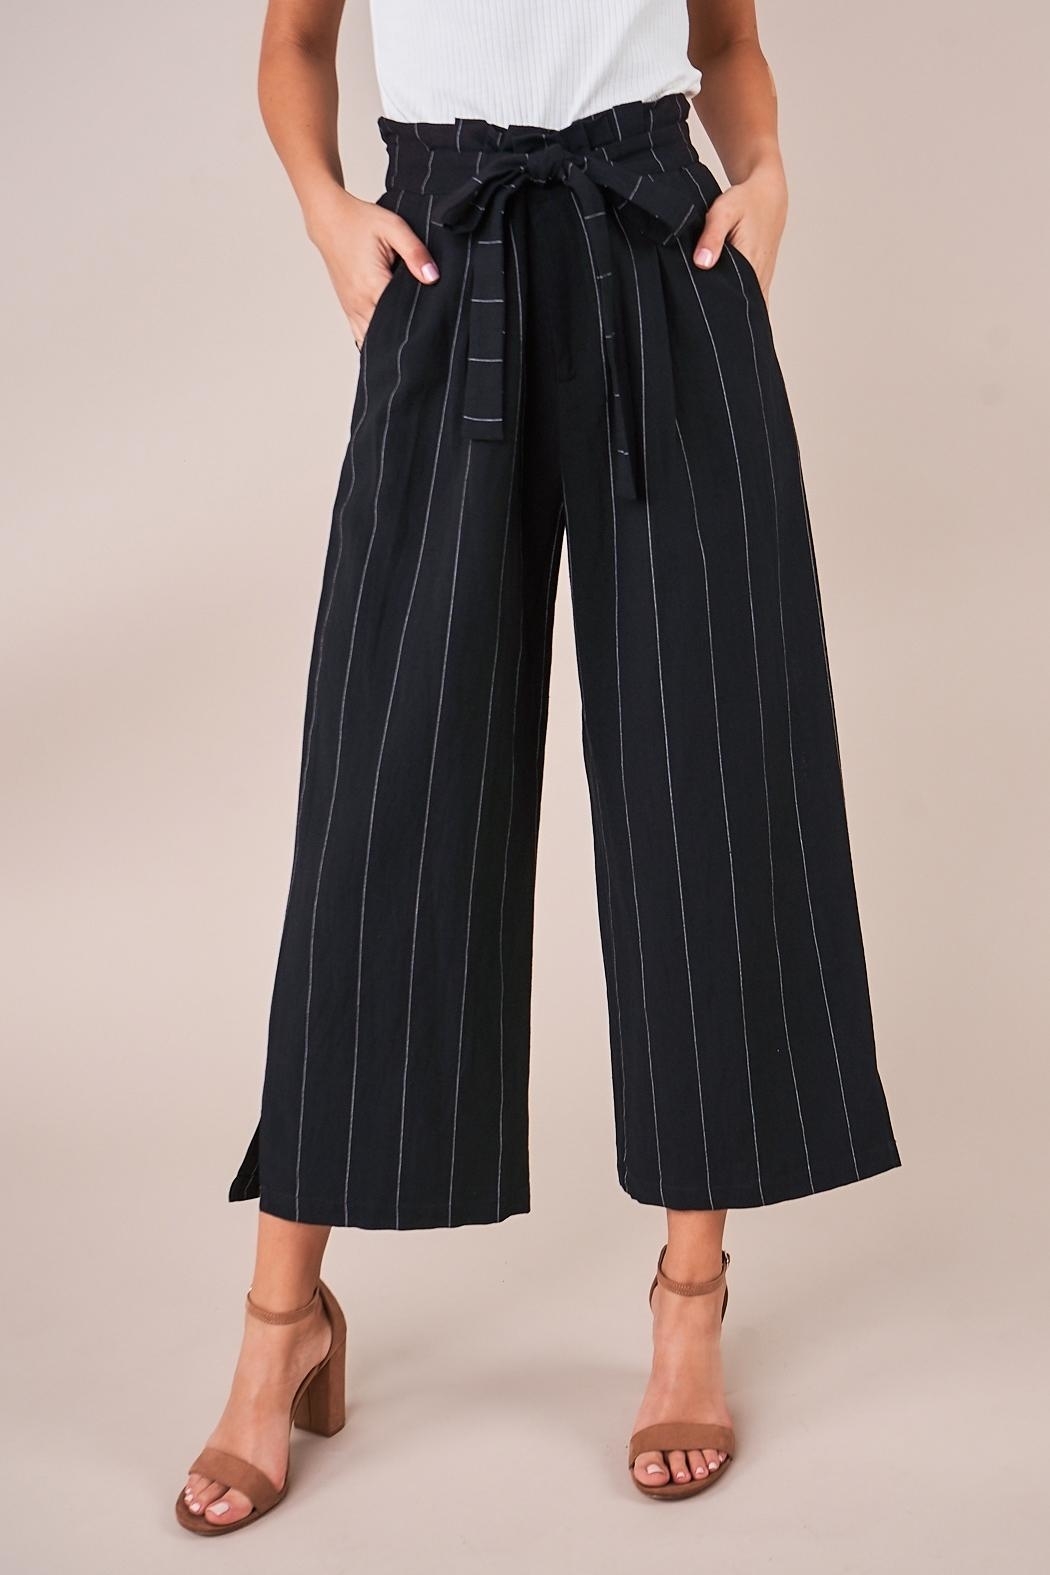 Sugarlips Striped Culotte Pants - Front Full Image